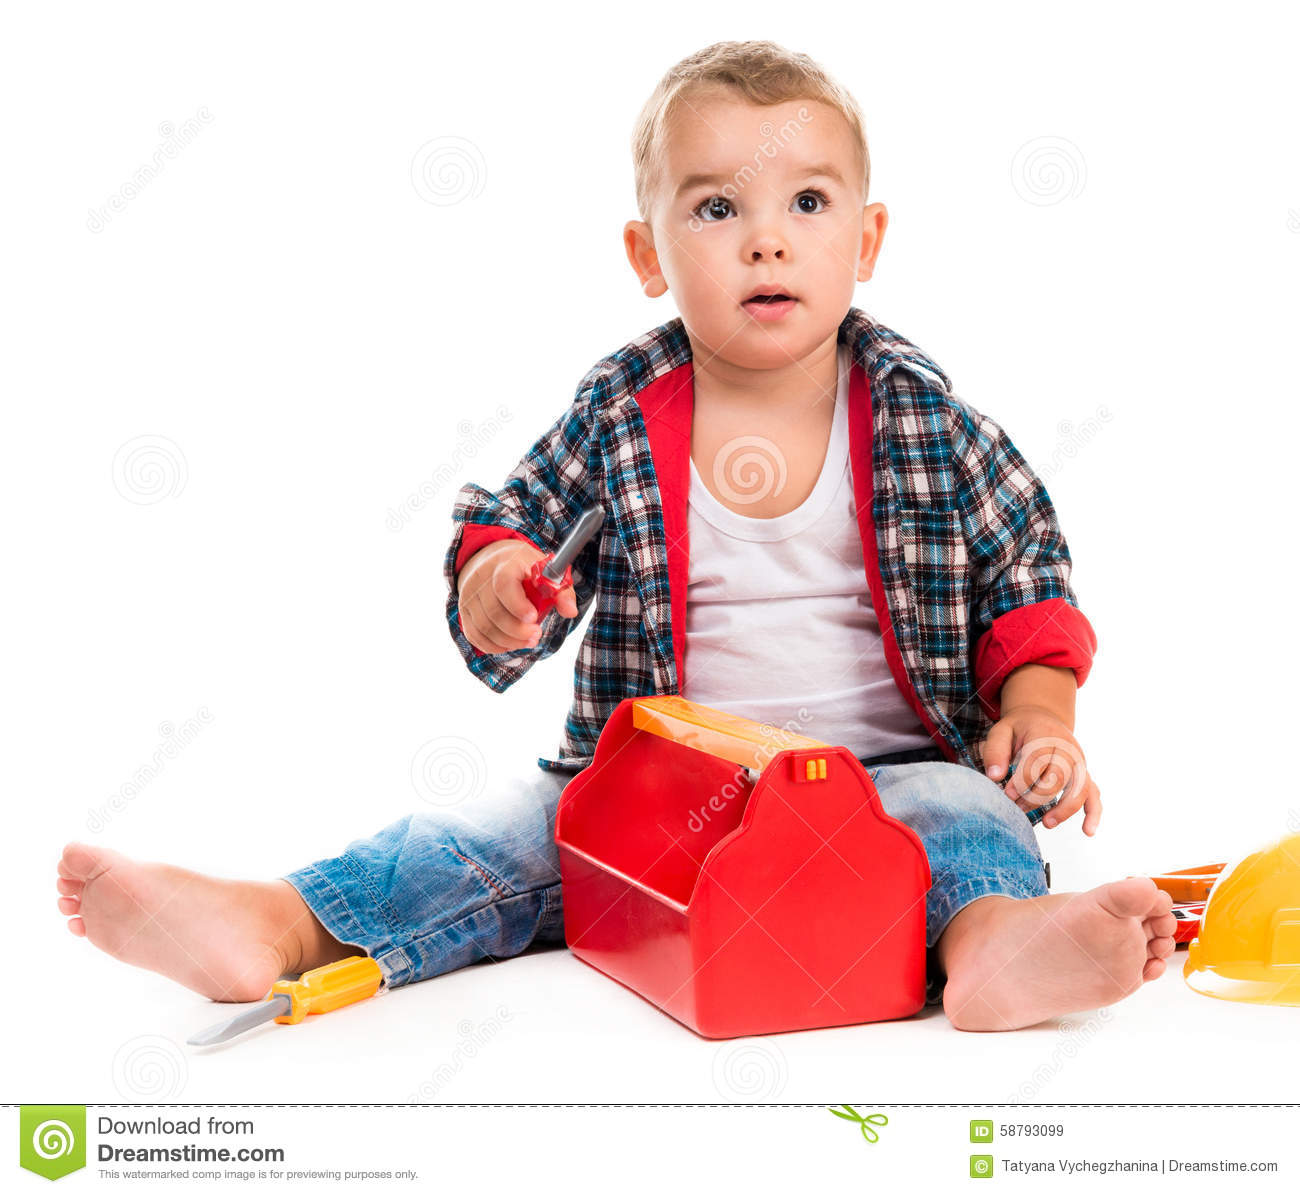 976128ceeeb Little Boy Playing Toy Tools Stock Image - Image of interest ...